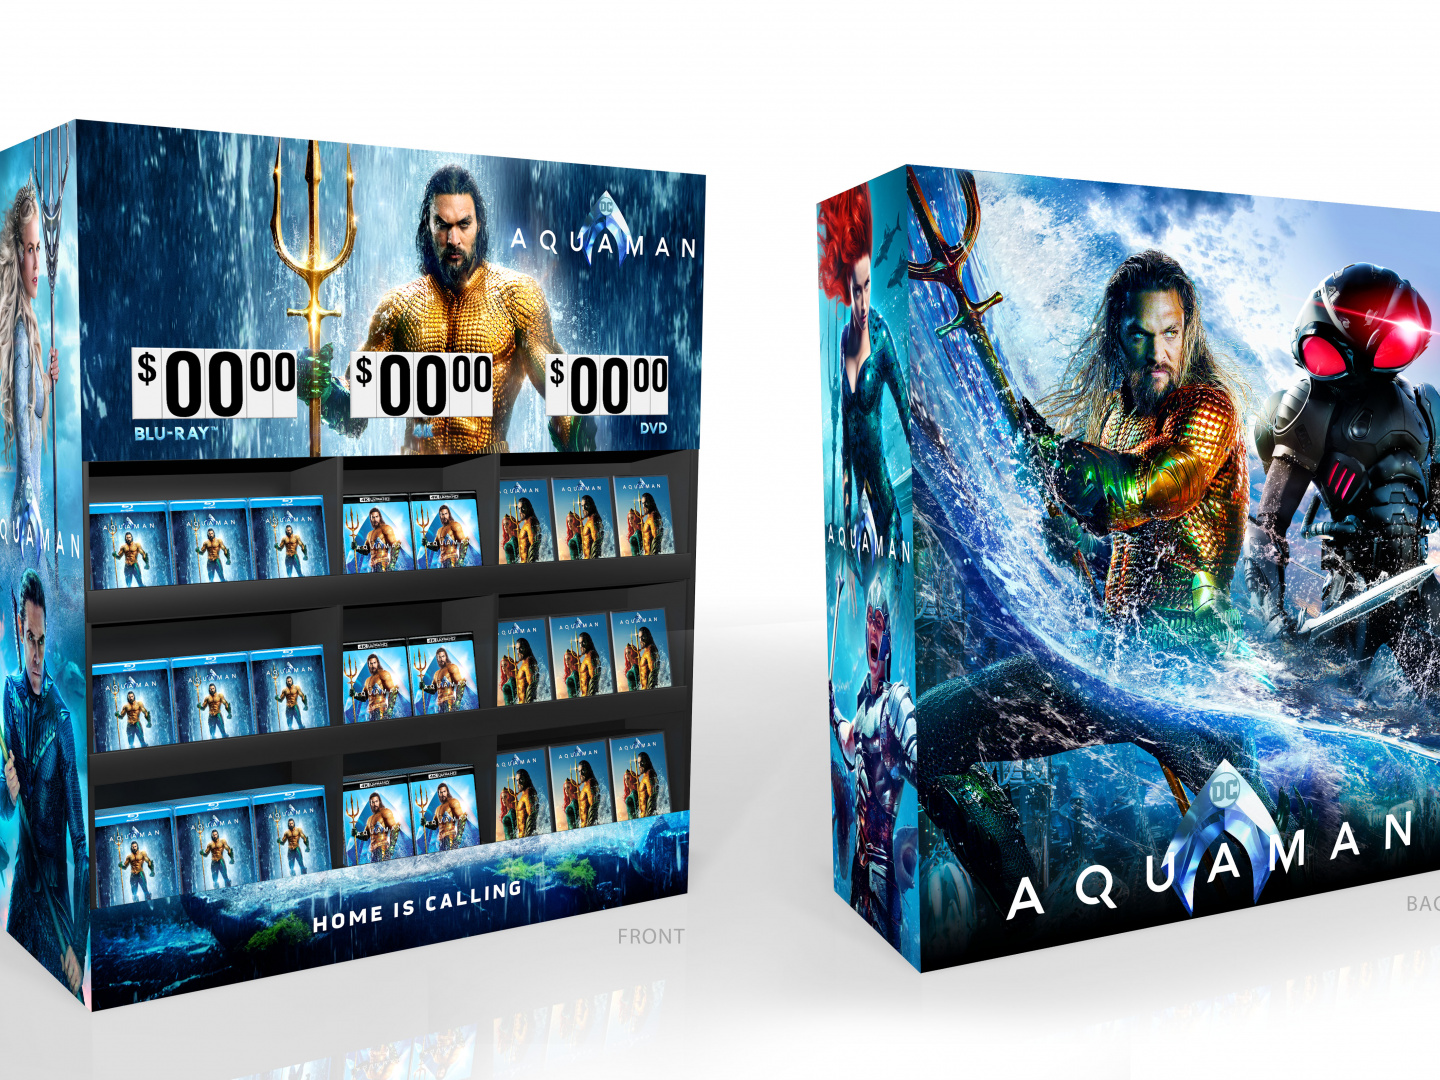 Aquaman Home Entertainment Walmart Display Home Video Cube Thumbnail